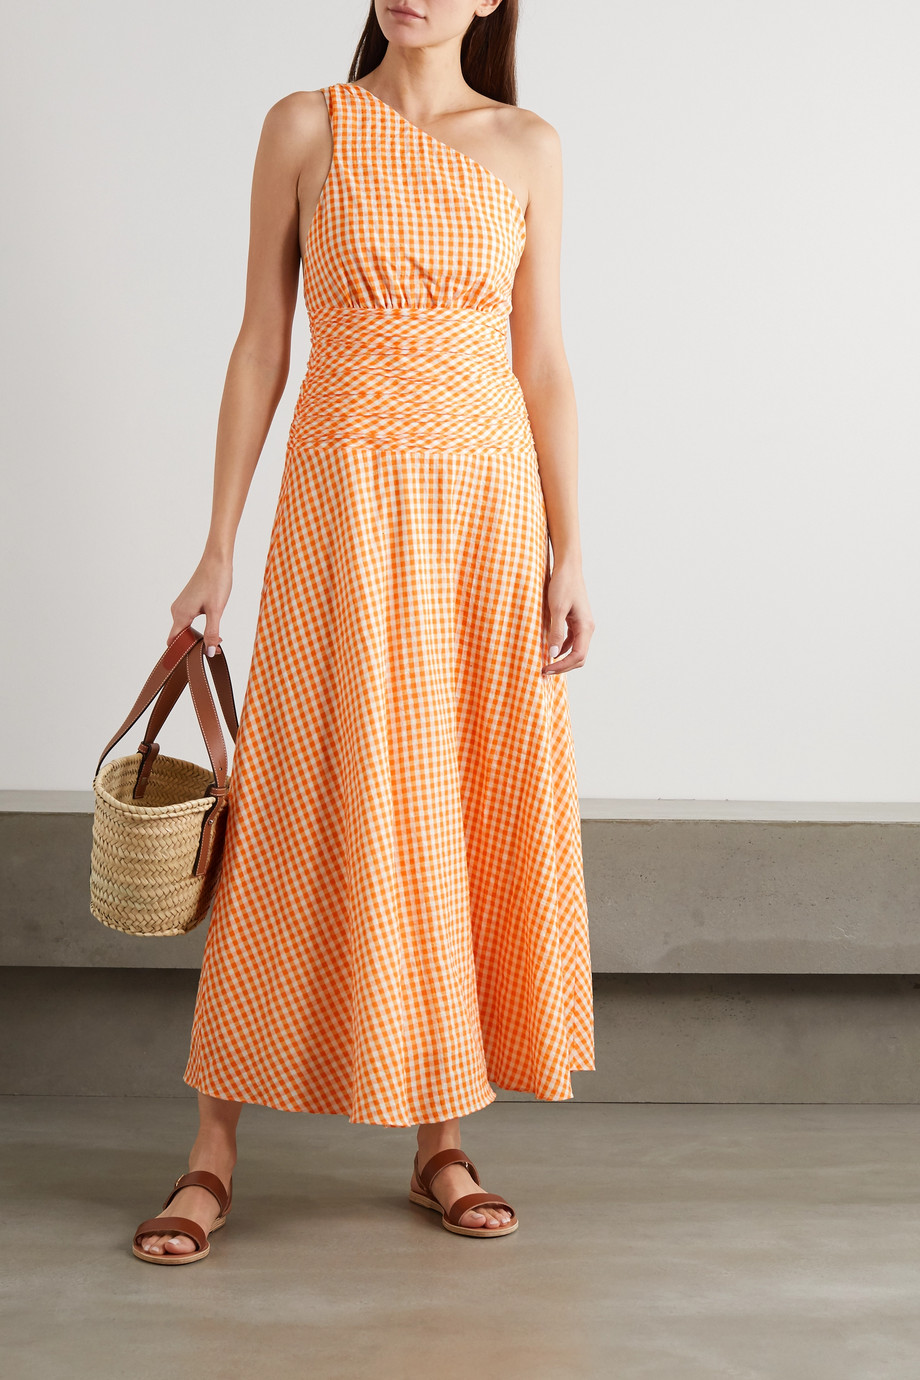 Peony + NET SUSTAIN one-shoulder gingham organic cotton and ECOVERO-blend dress